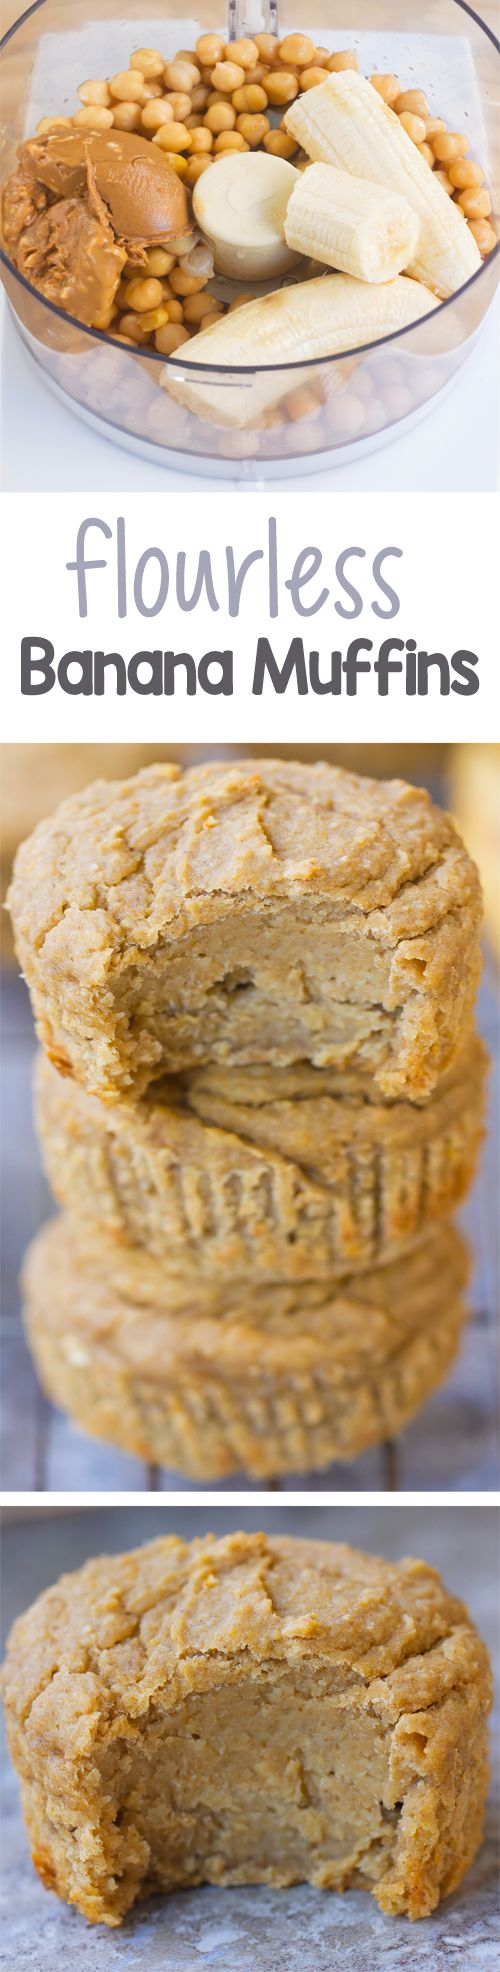 This is one of those MUST TRY recipes, and it will change the way you think of muffins. Flourless banana blender muffins